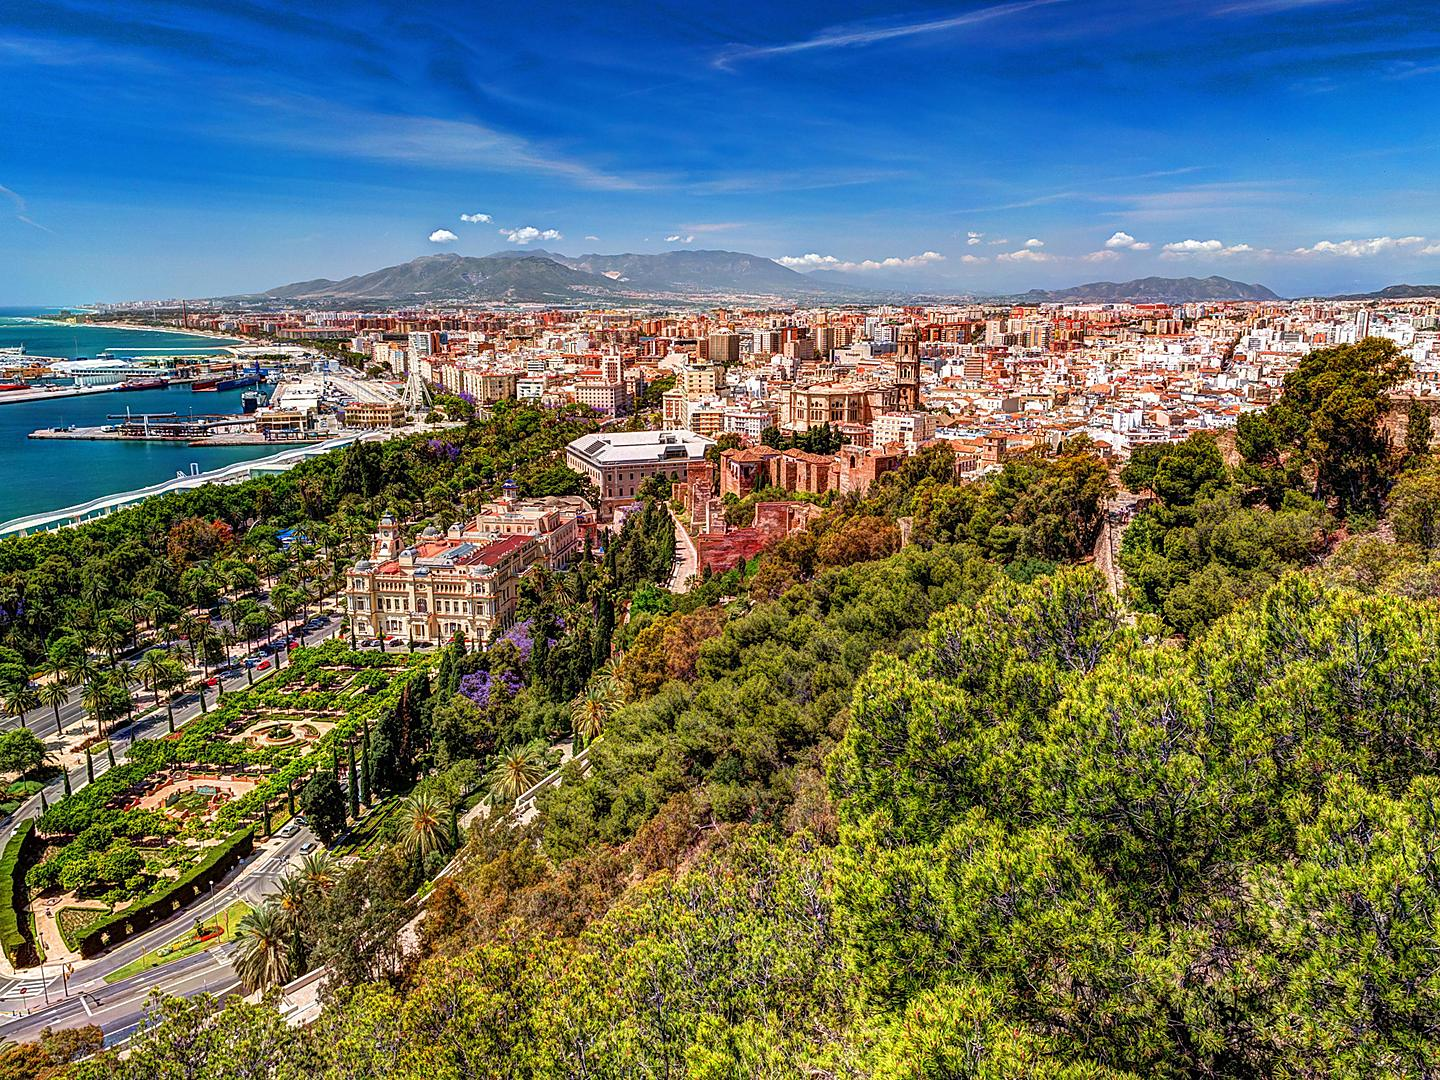 Málaga, Spain Aerial View